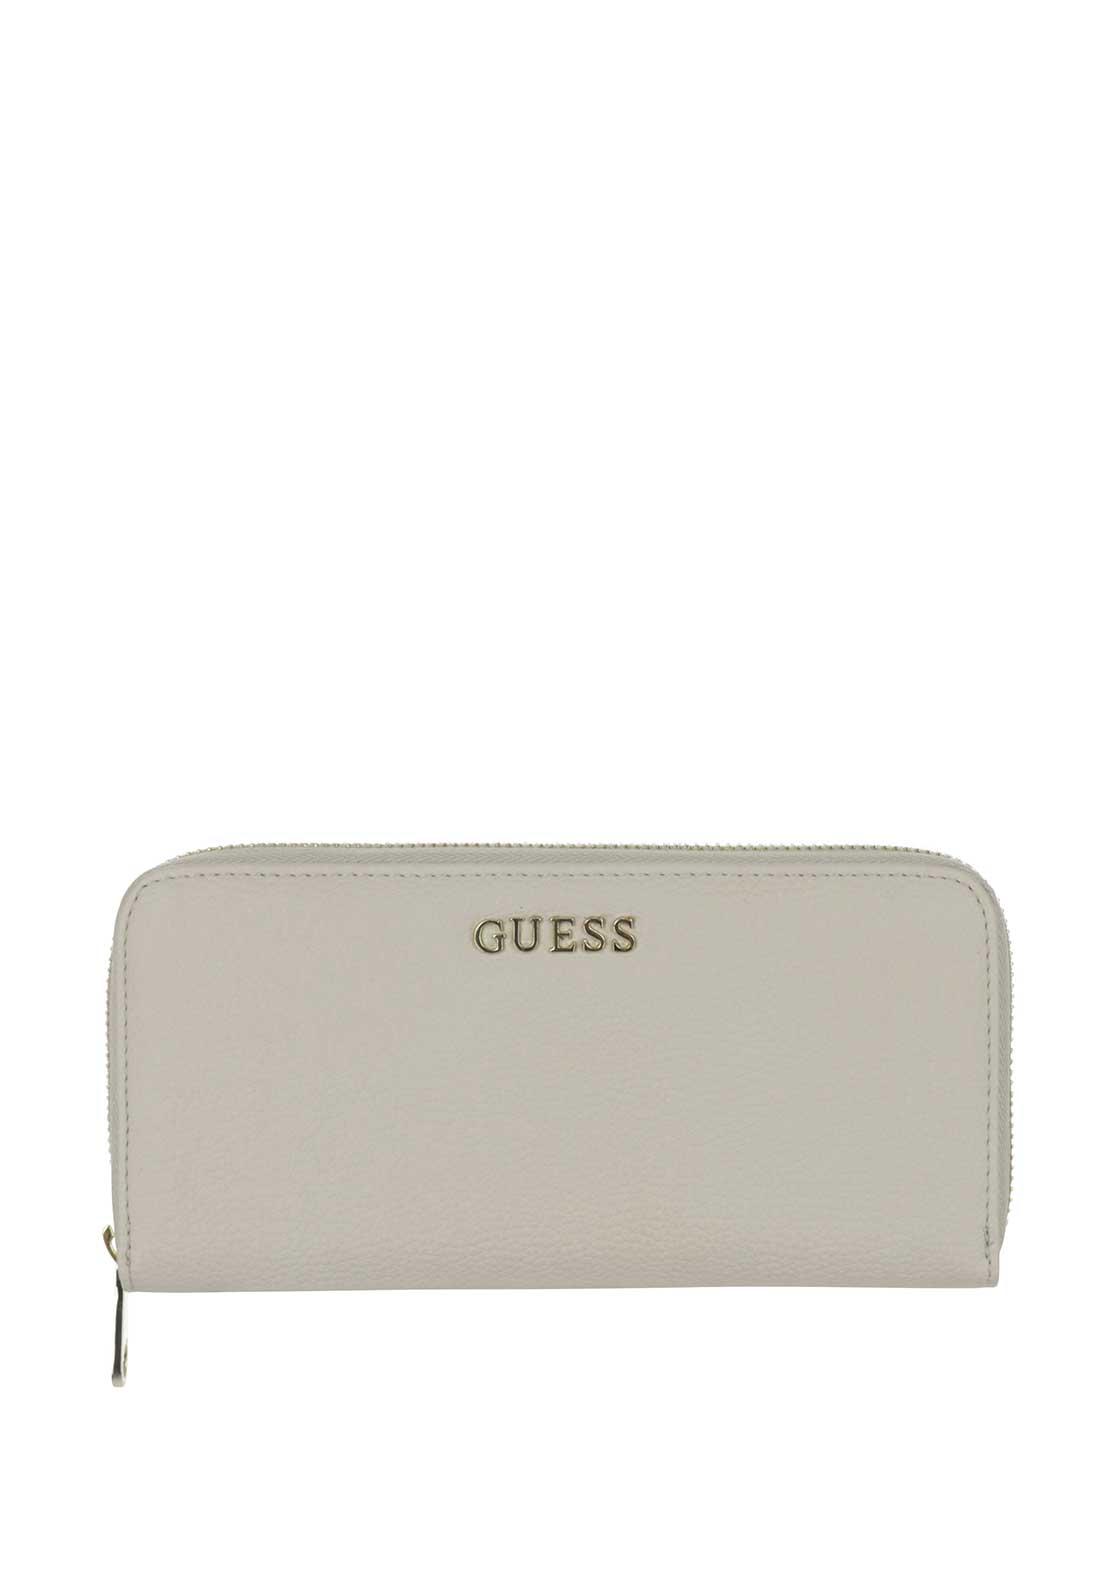 Guess Small Zip around Purse, Cement